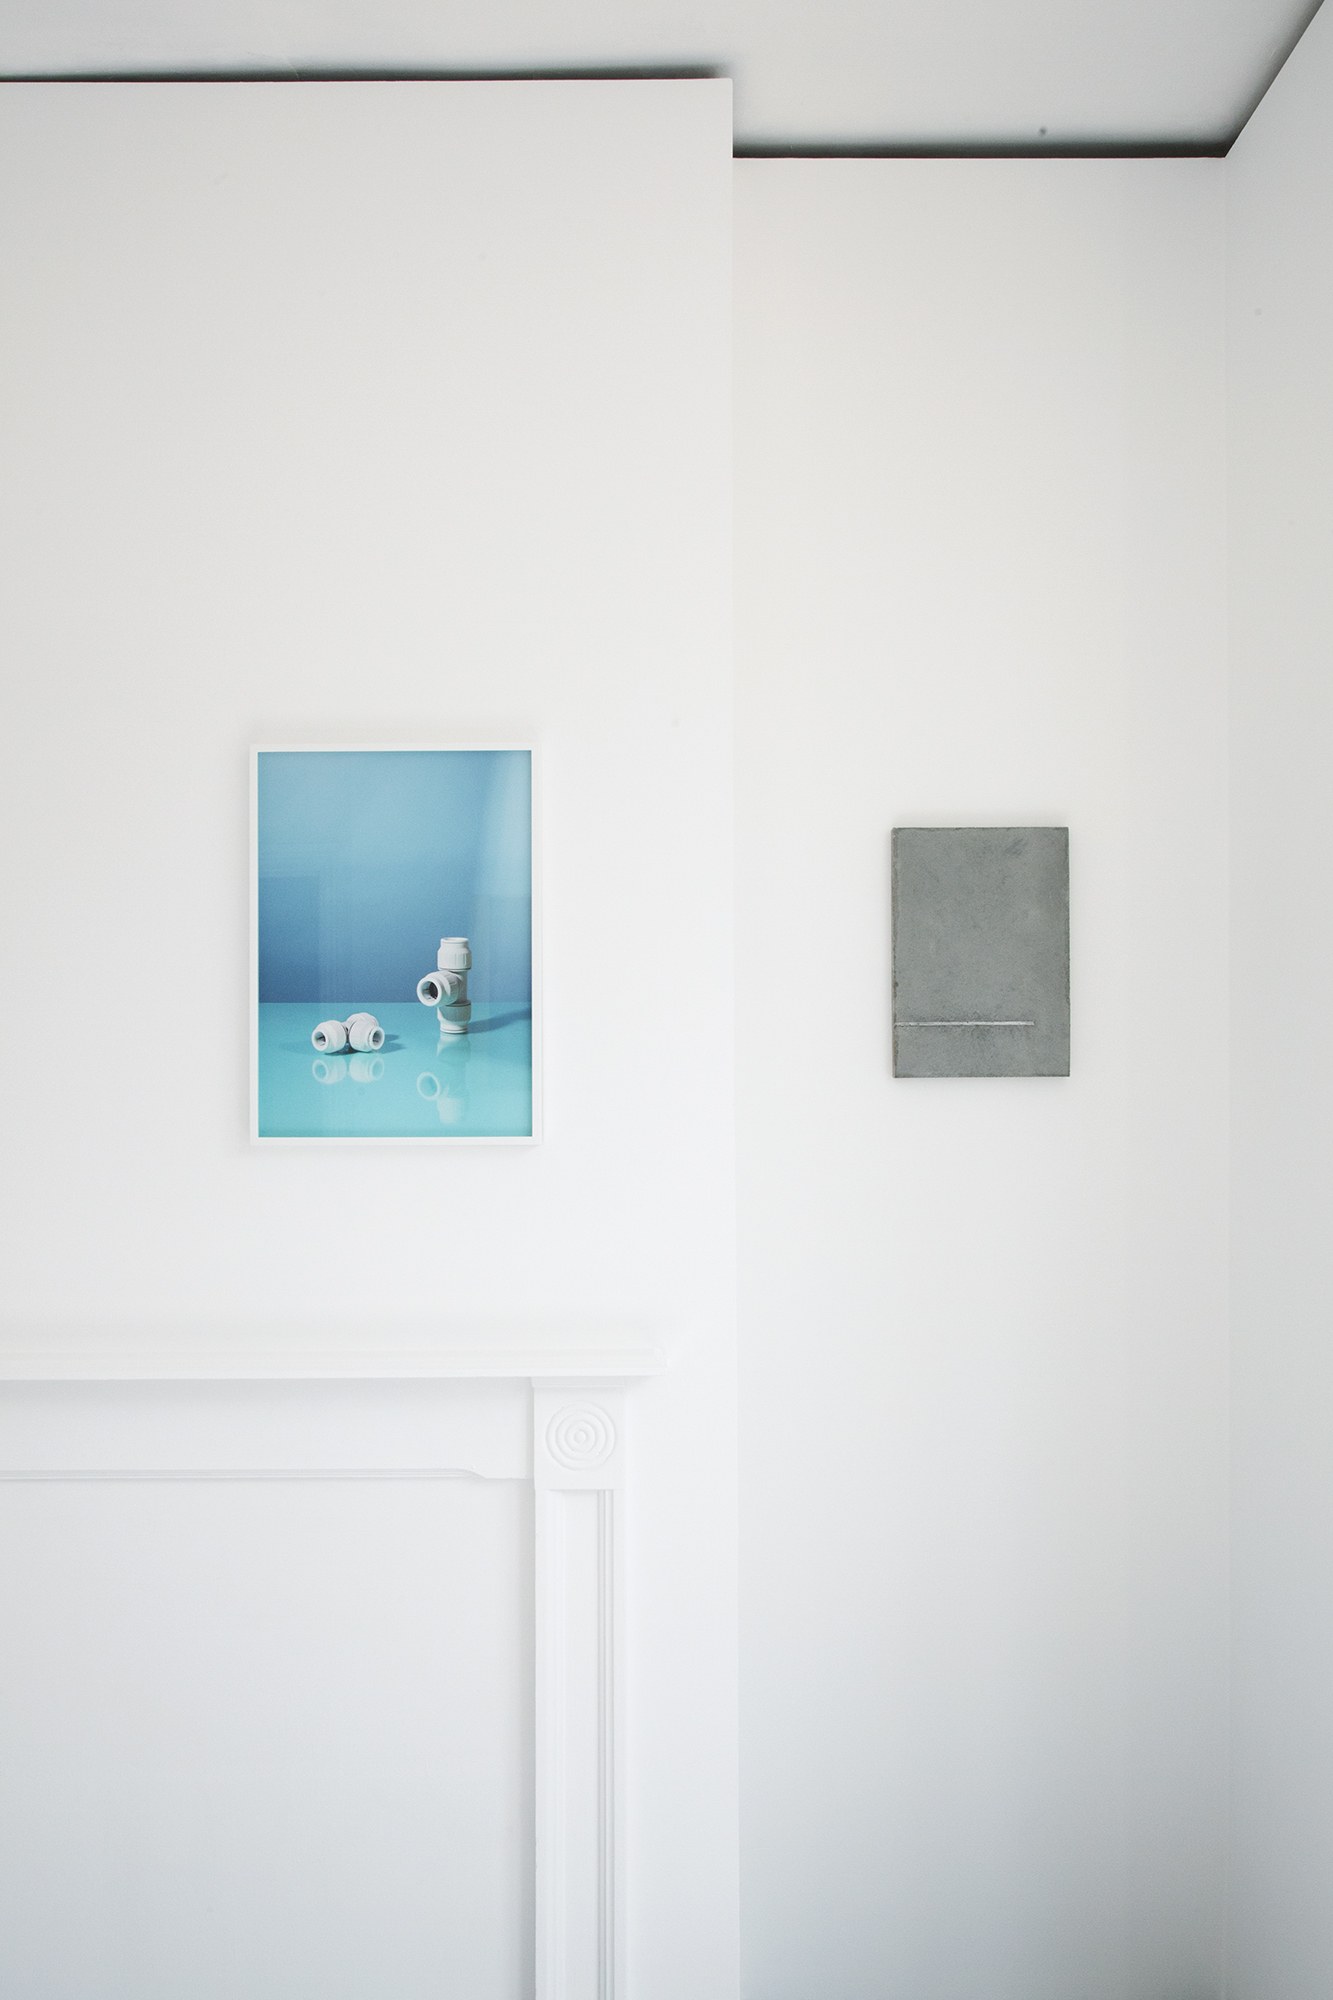 22mm/15mm, 2018 Unique Framed archival inkjet print  51 x 37 cm  Untitled, 2018 Concrete and steel  35.3 x 25 cm